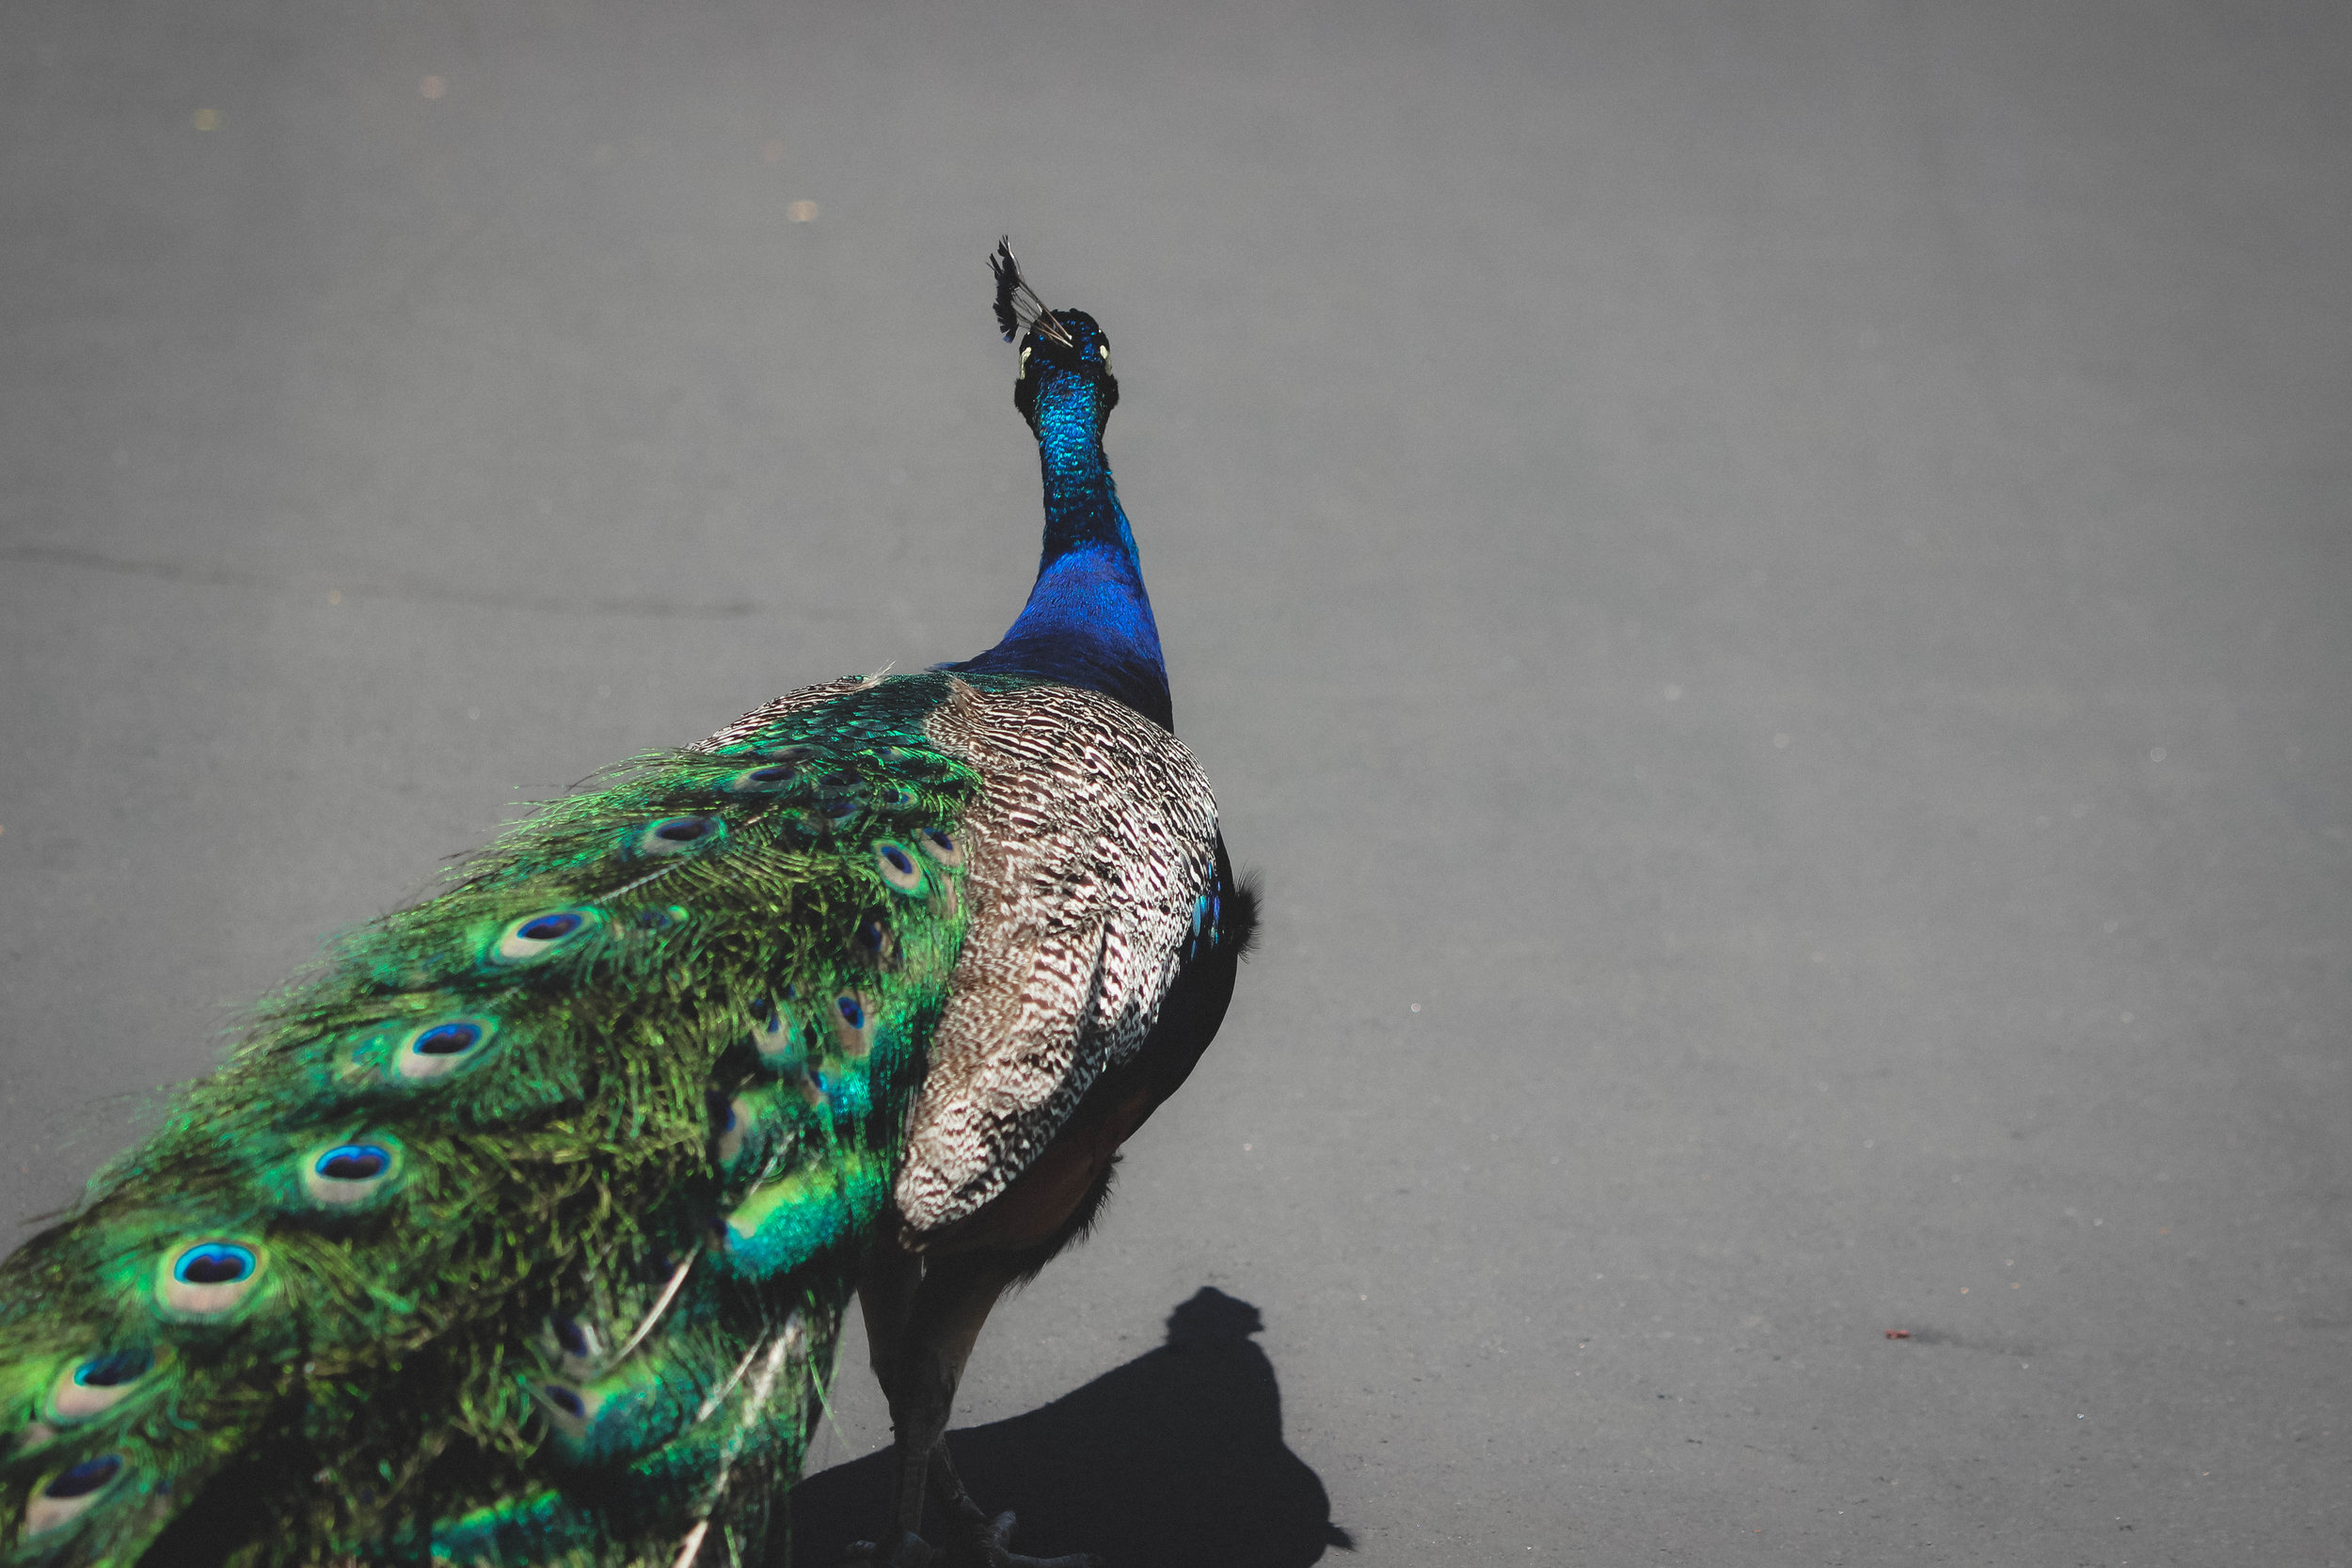 Peacock at the Detroit Zoo | Image by Taylor Ifland Photography